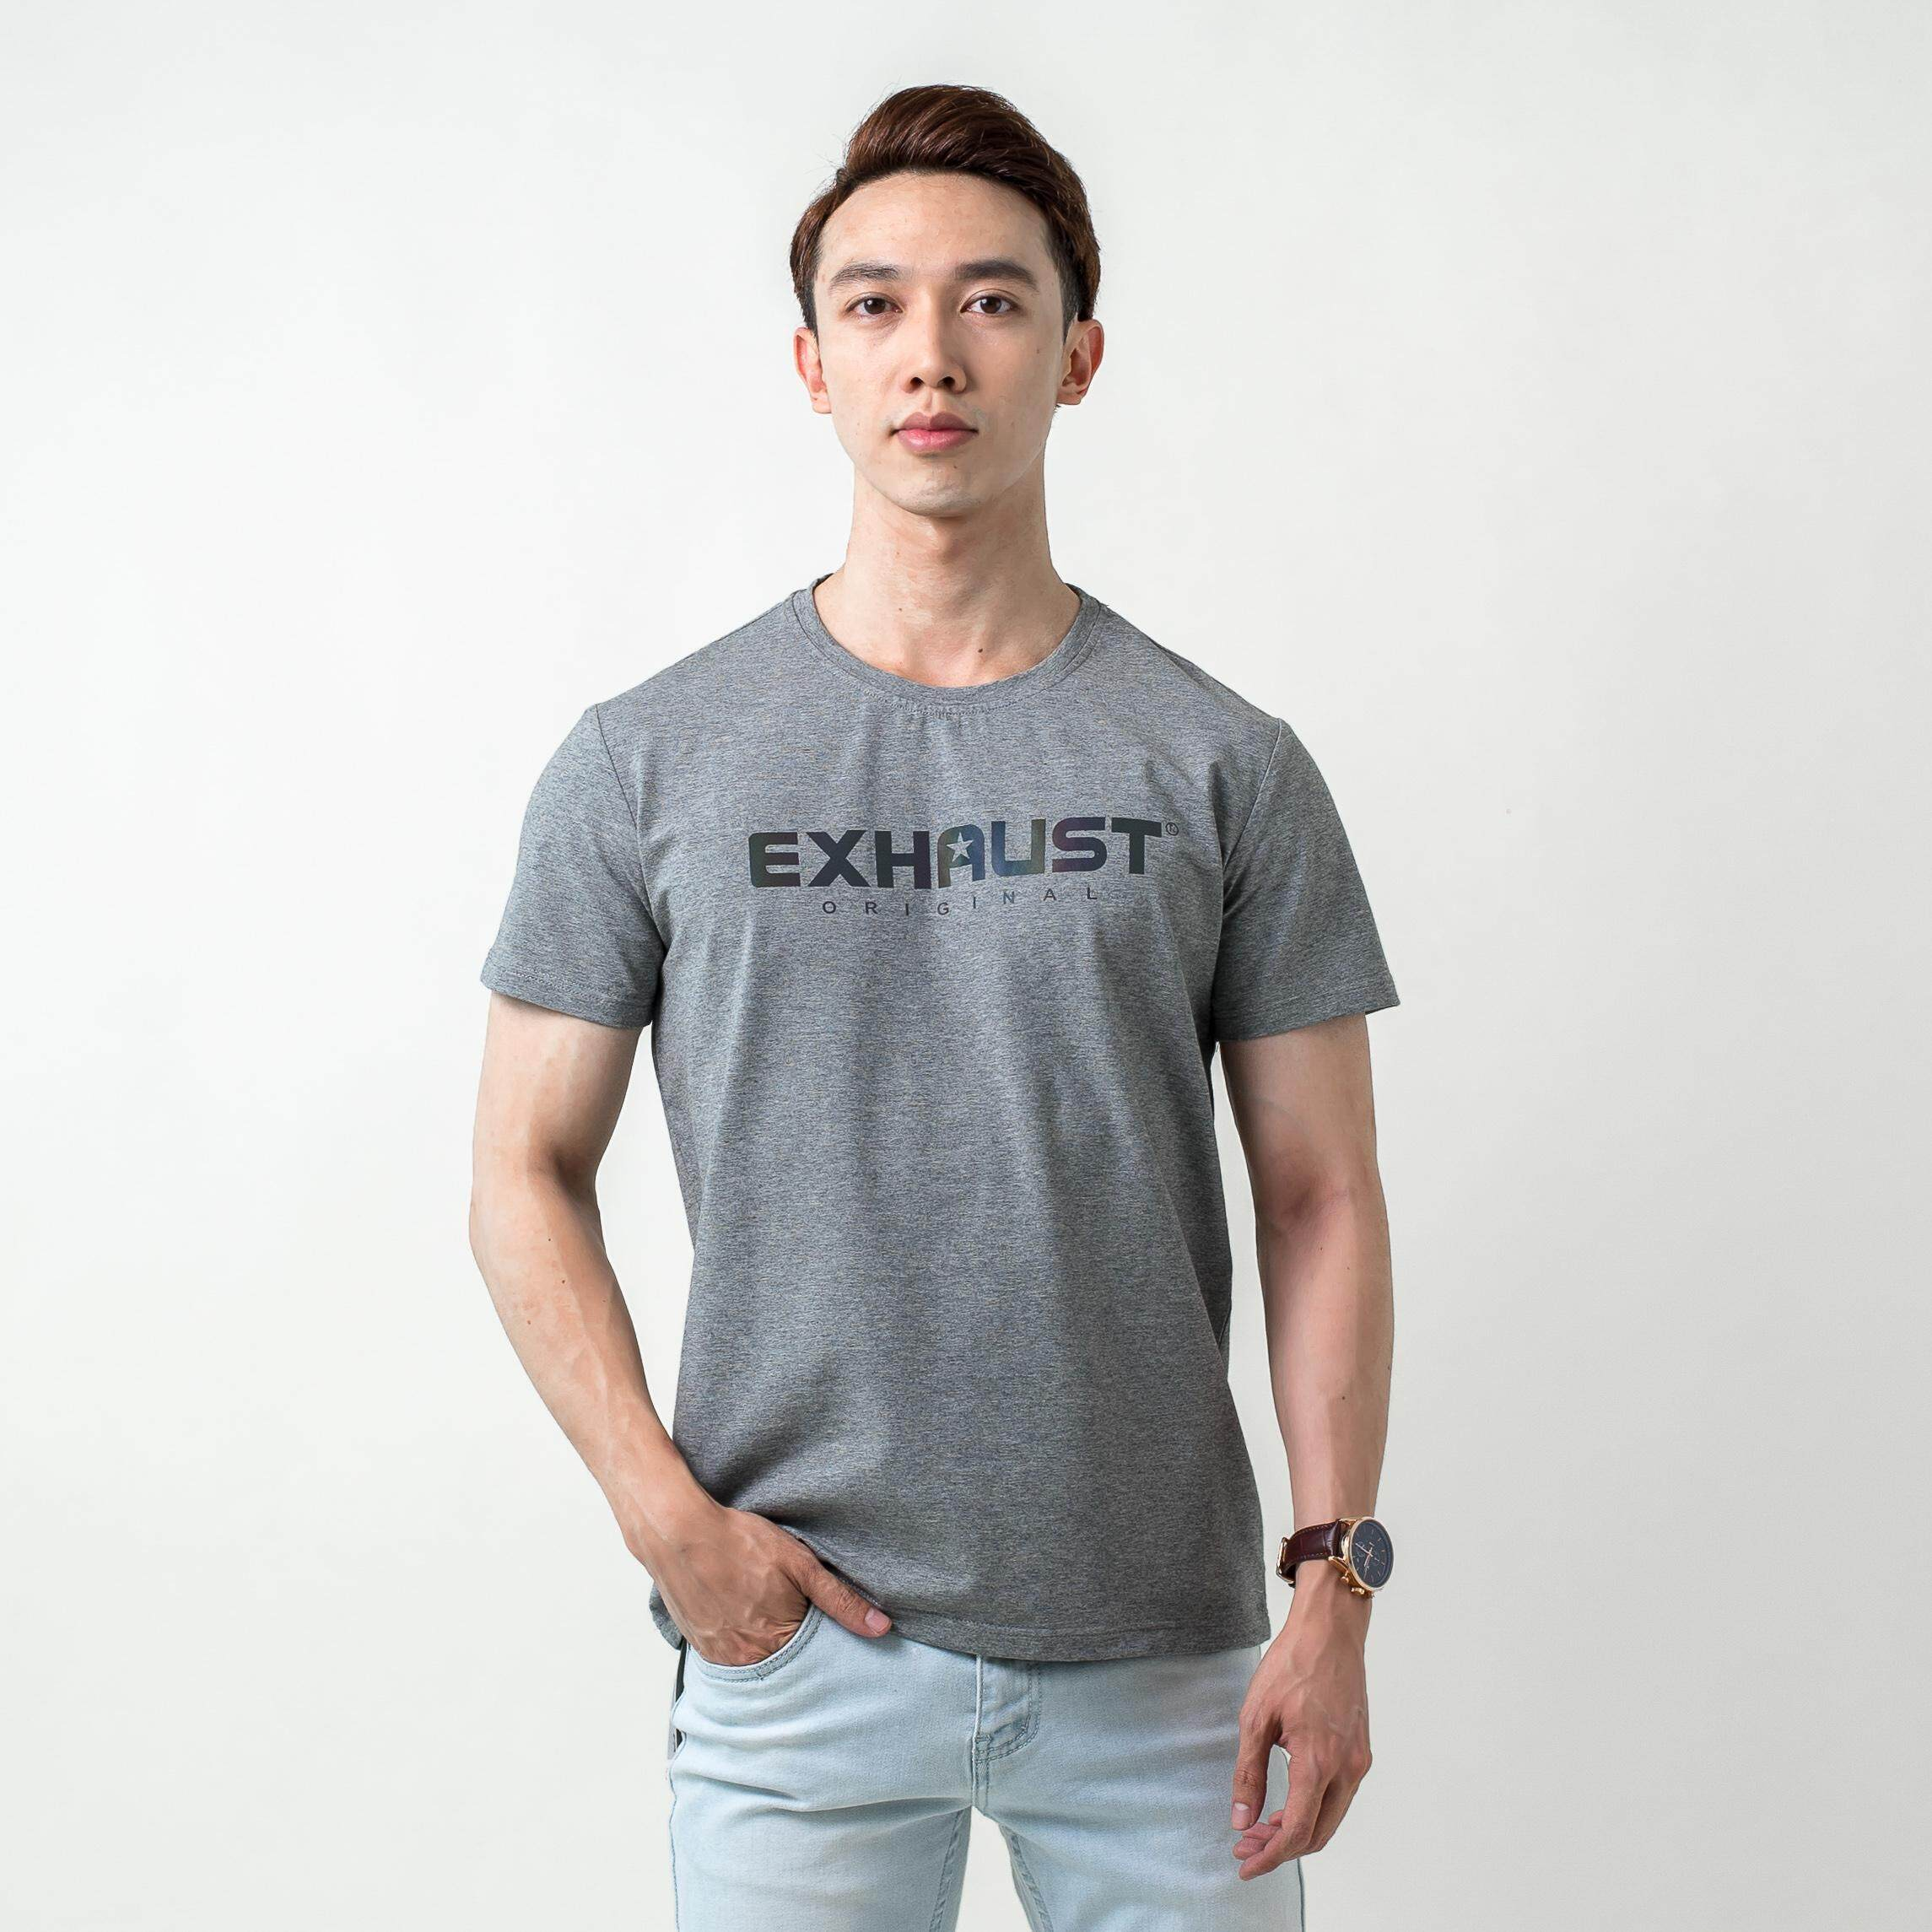 EXHAUST' BASIC PRINTED HOUSEMARK MEN'S SHORT SLEEVE ROUND NECK T-SHIRT